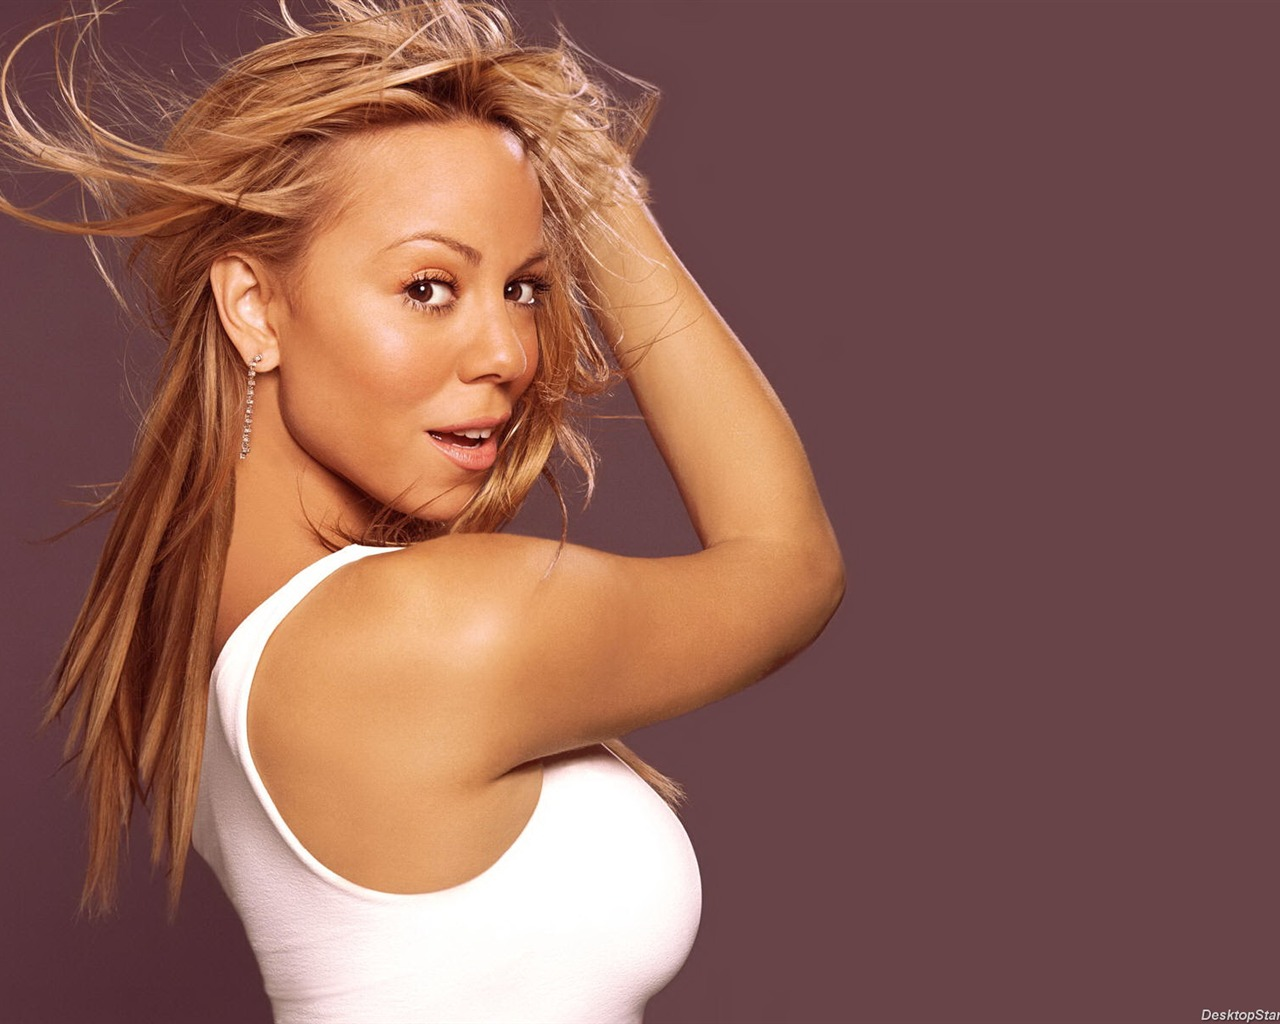 Mariah Carey #031 - 1280x1024 Wallpapers Pictures Photos Images